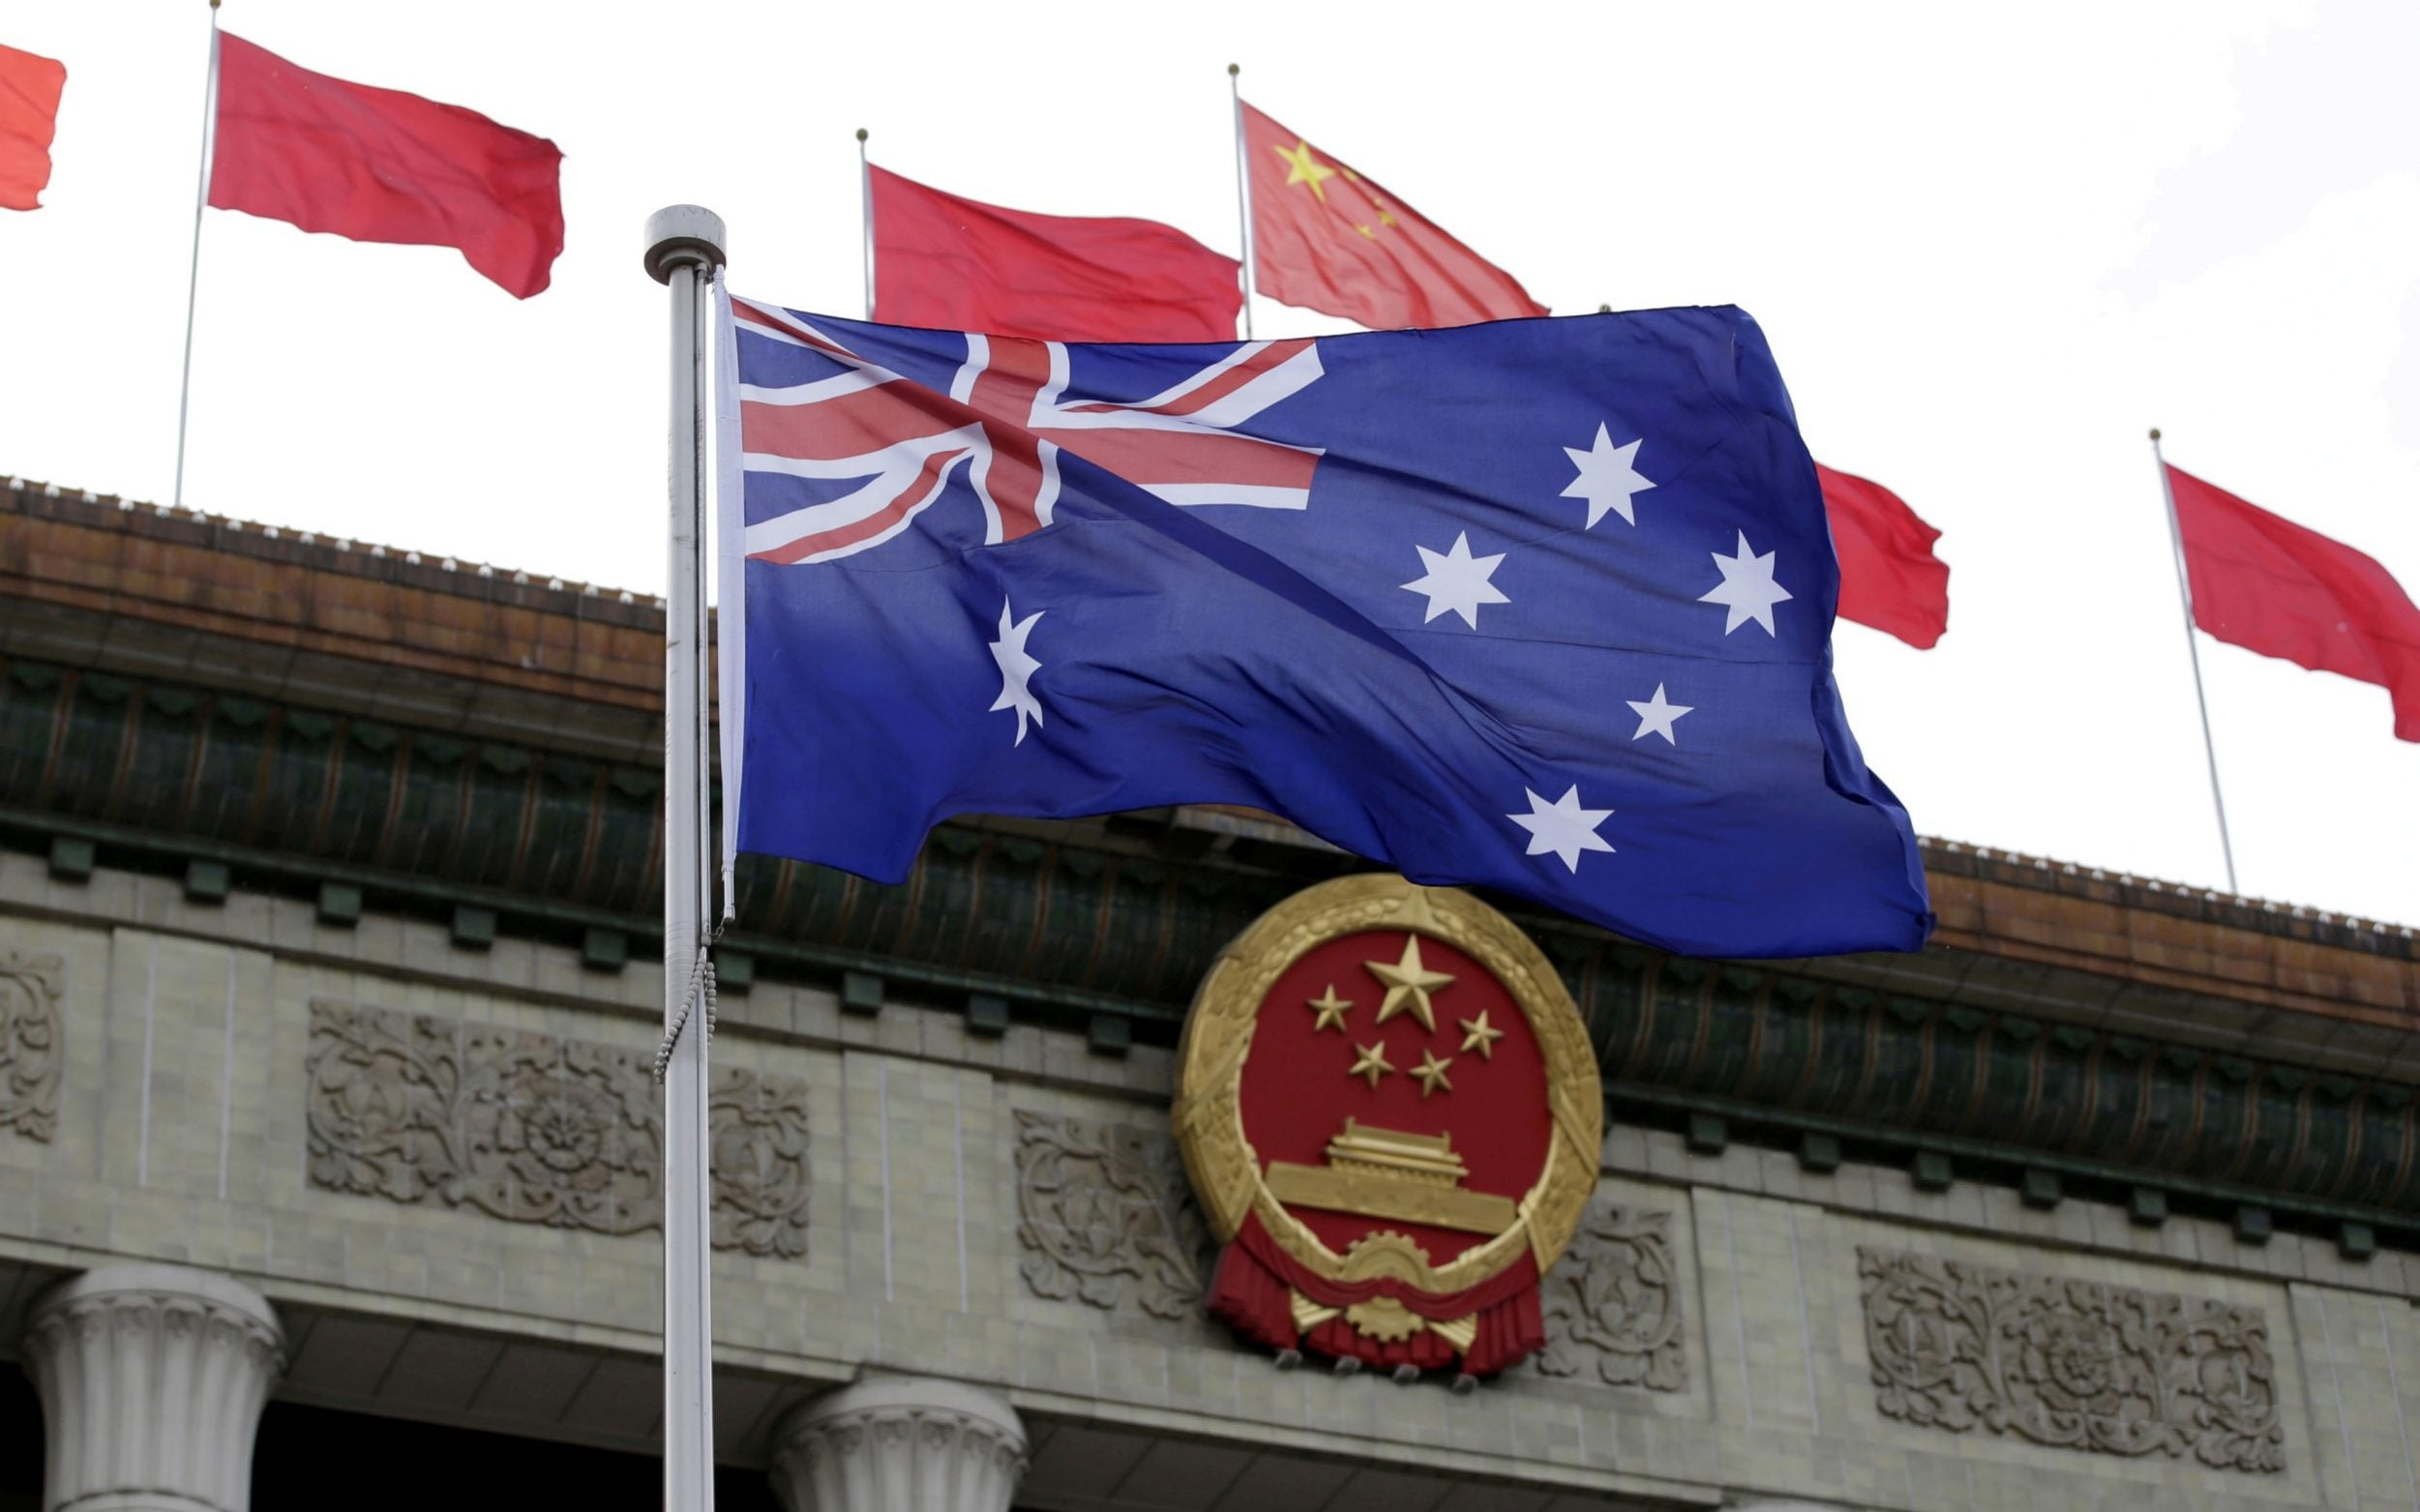 Pressure mounts on foreign media in China after evacuation of Australian reporters